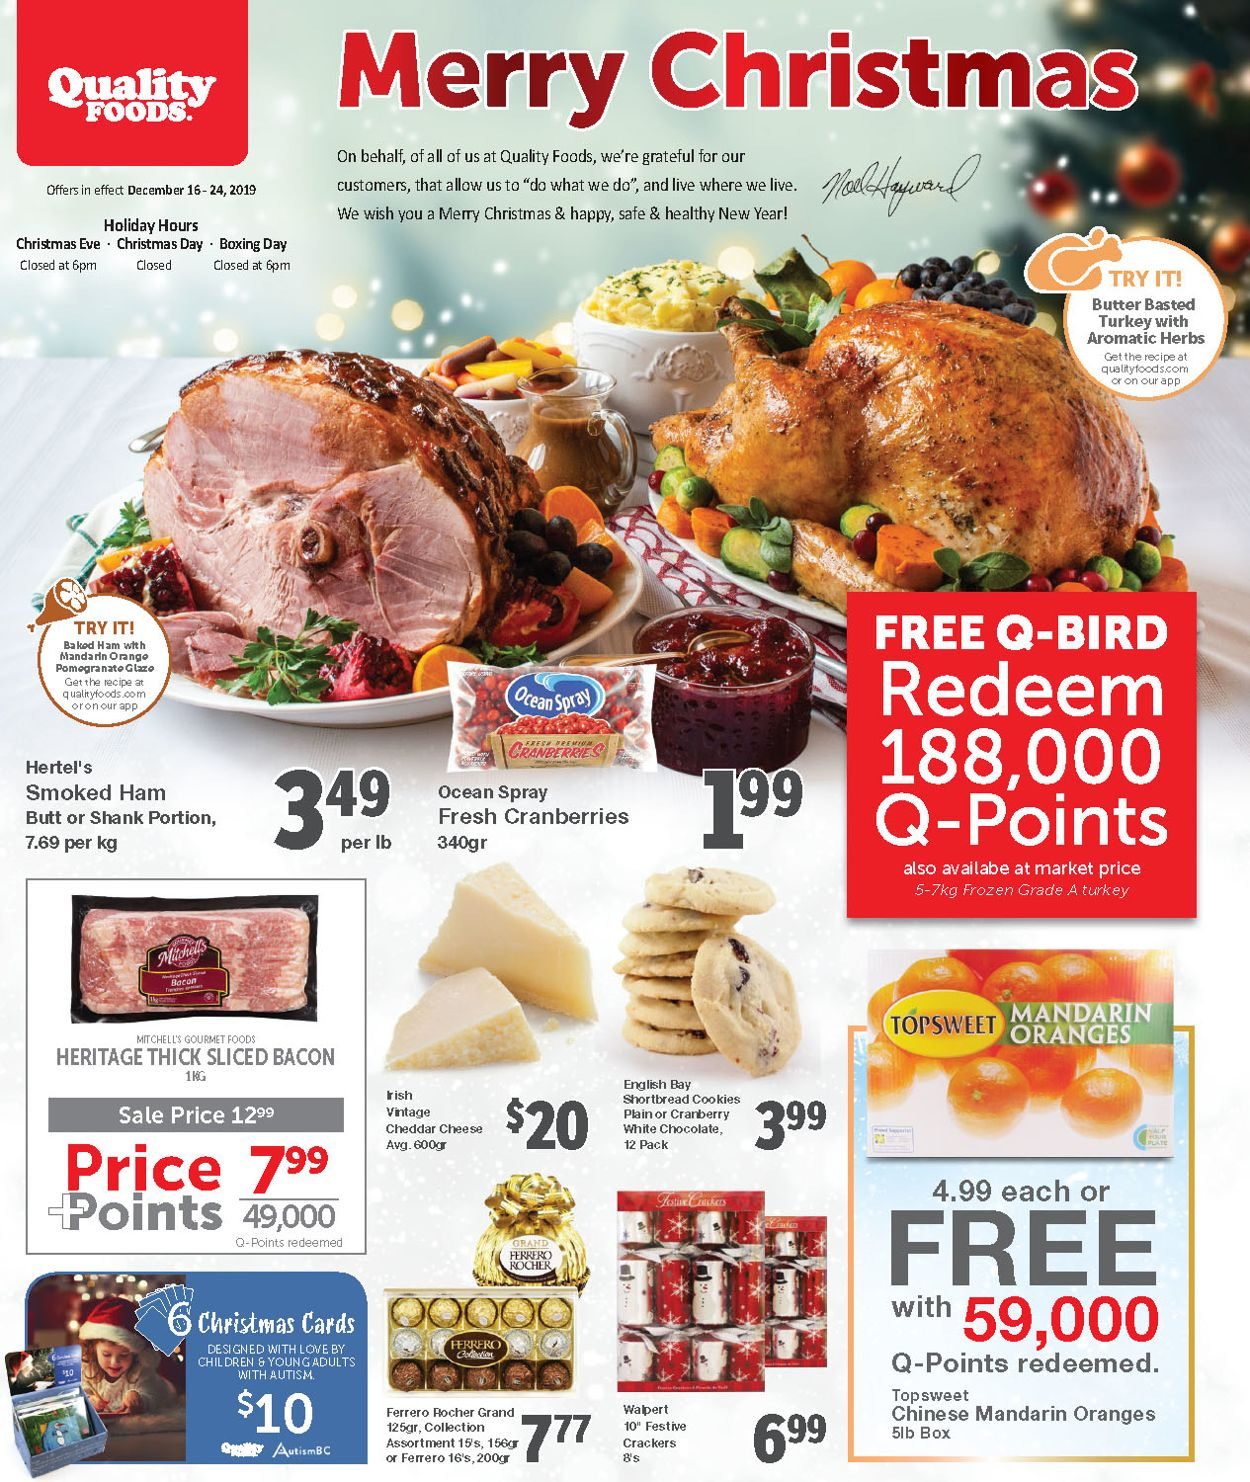 Quality Foods - Christmas 2019 Flyer Flyer - 12/16-12/24/2019